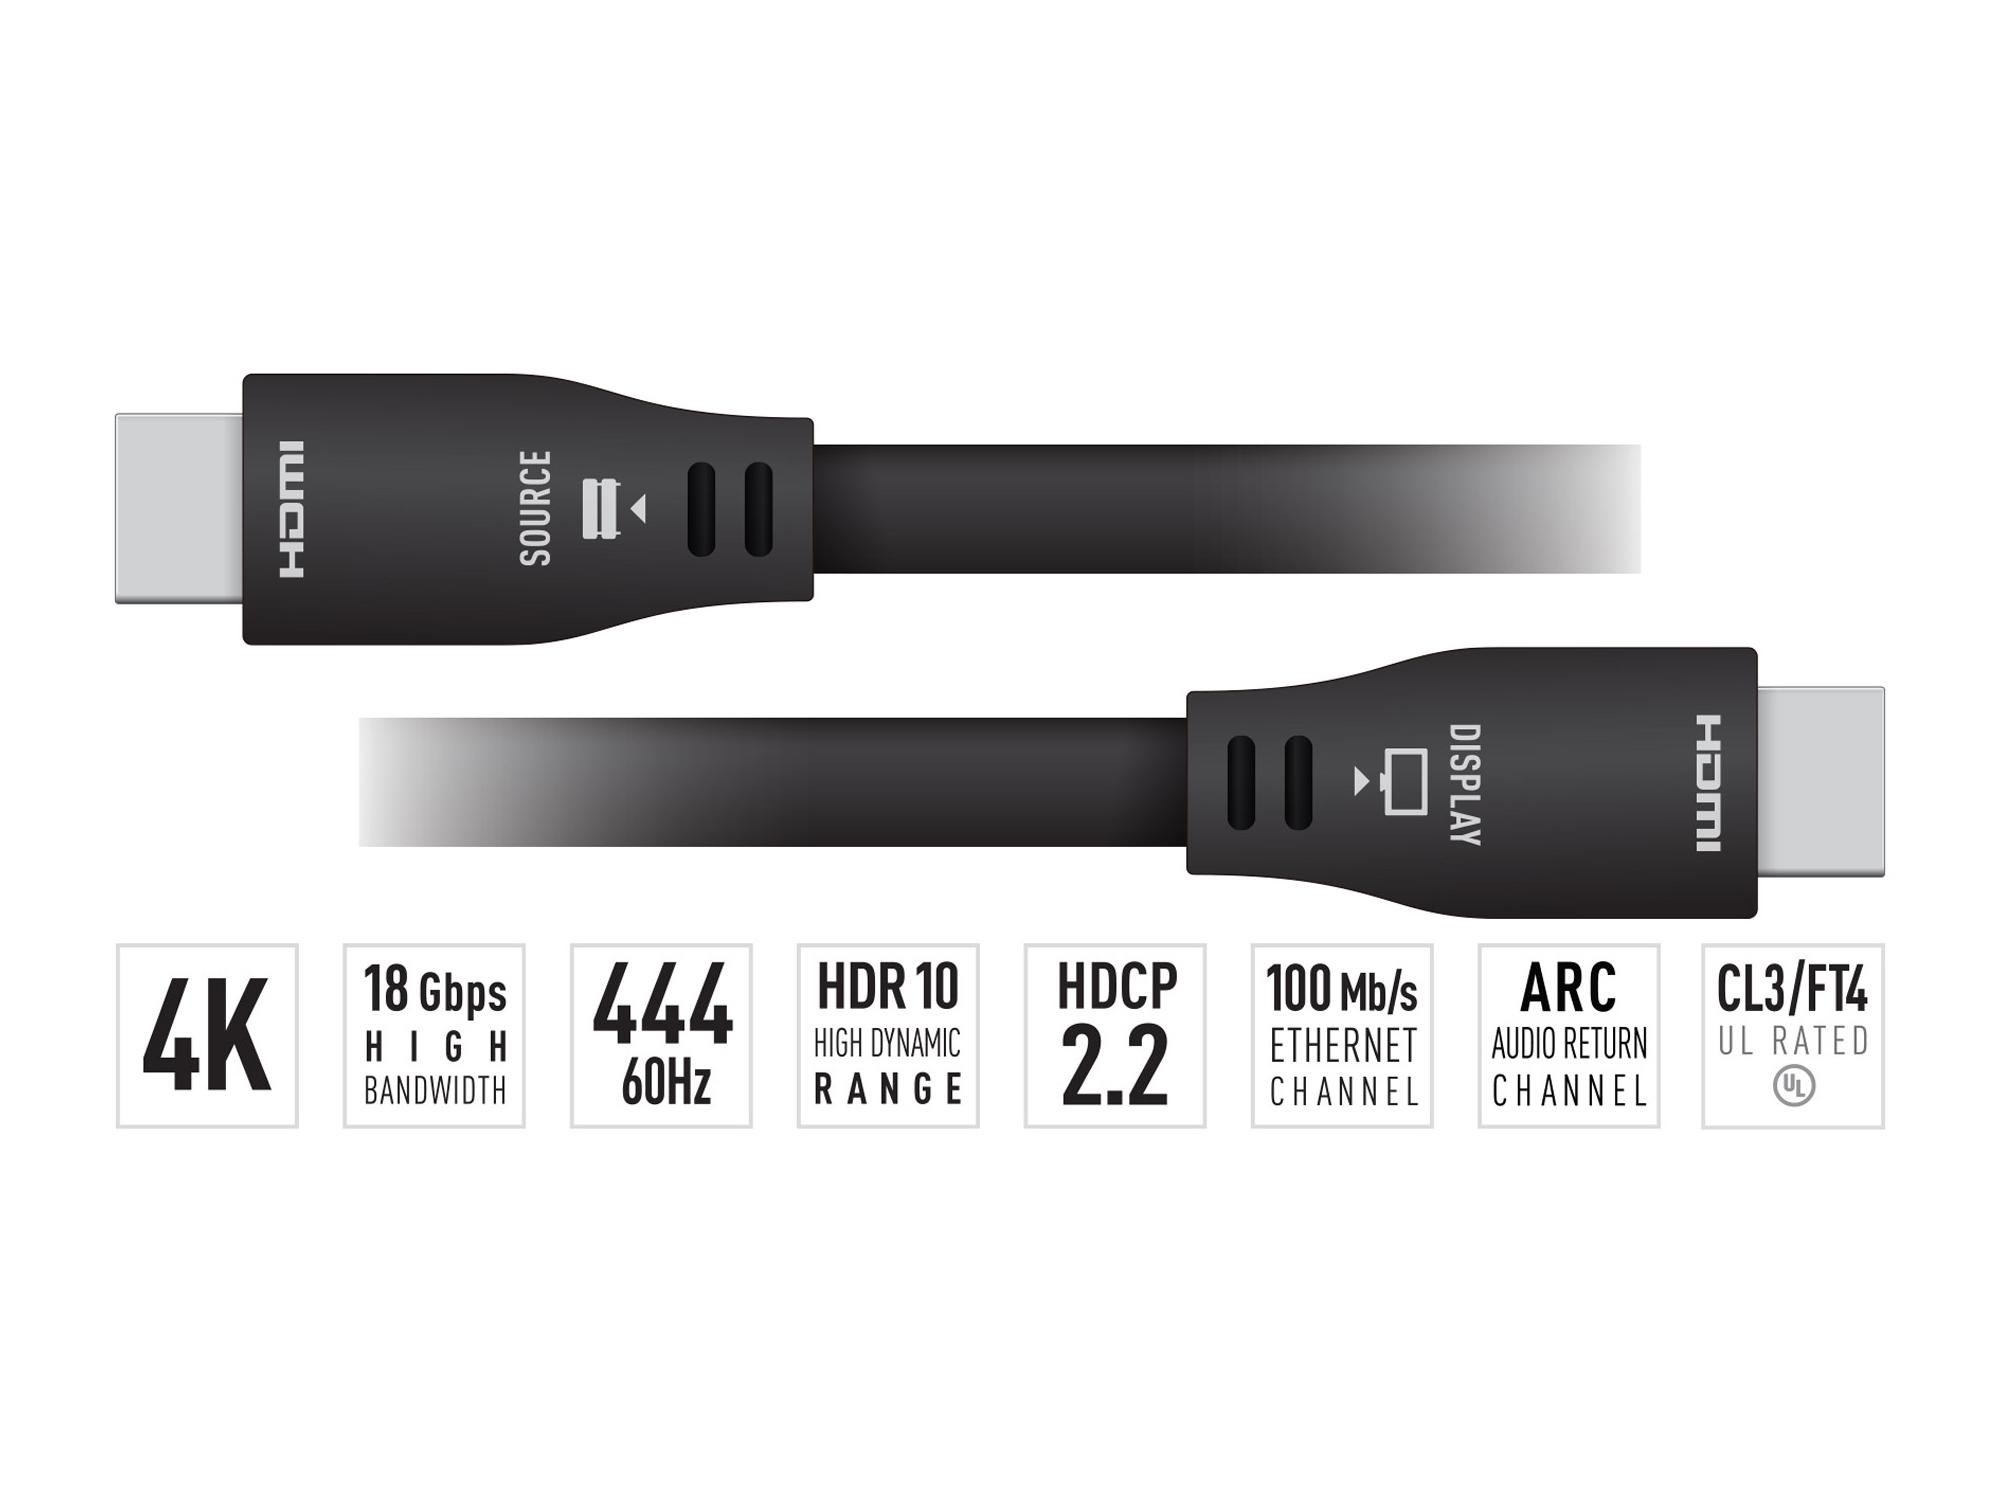 KD-Pro40GX 40ft 4K/UHD ARC/24AWG HDMI Cable with High-Speed Ethernet by Key Digital